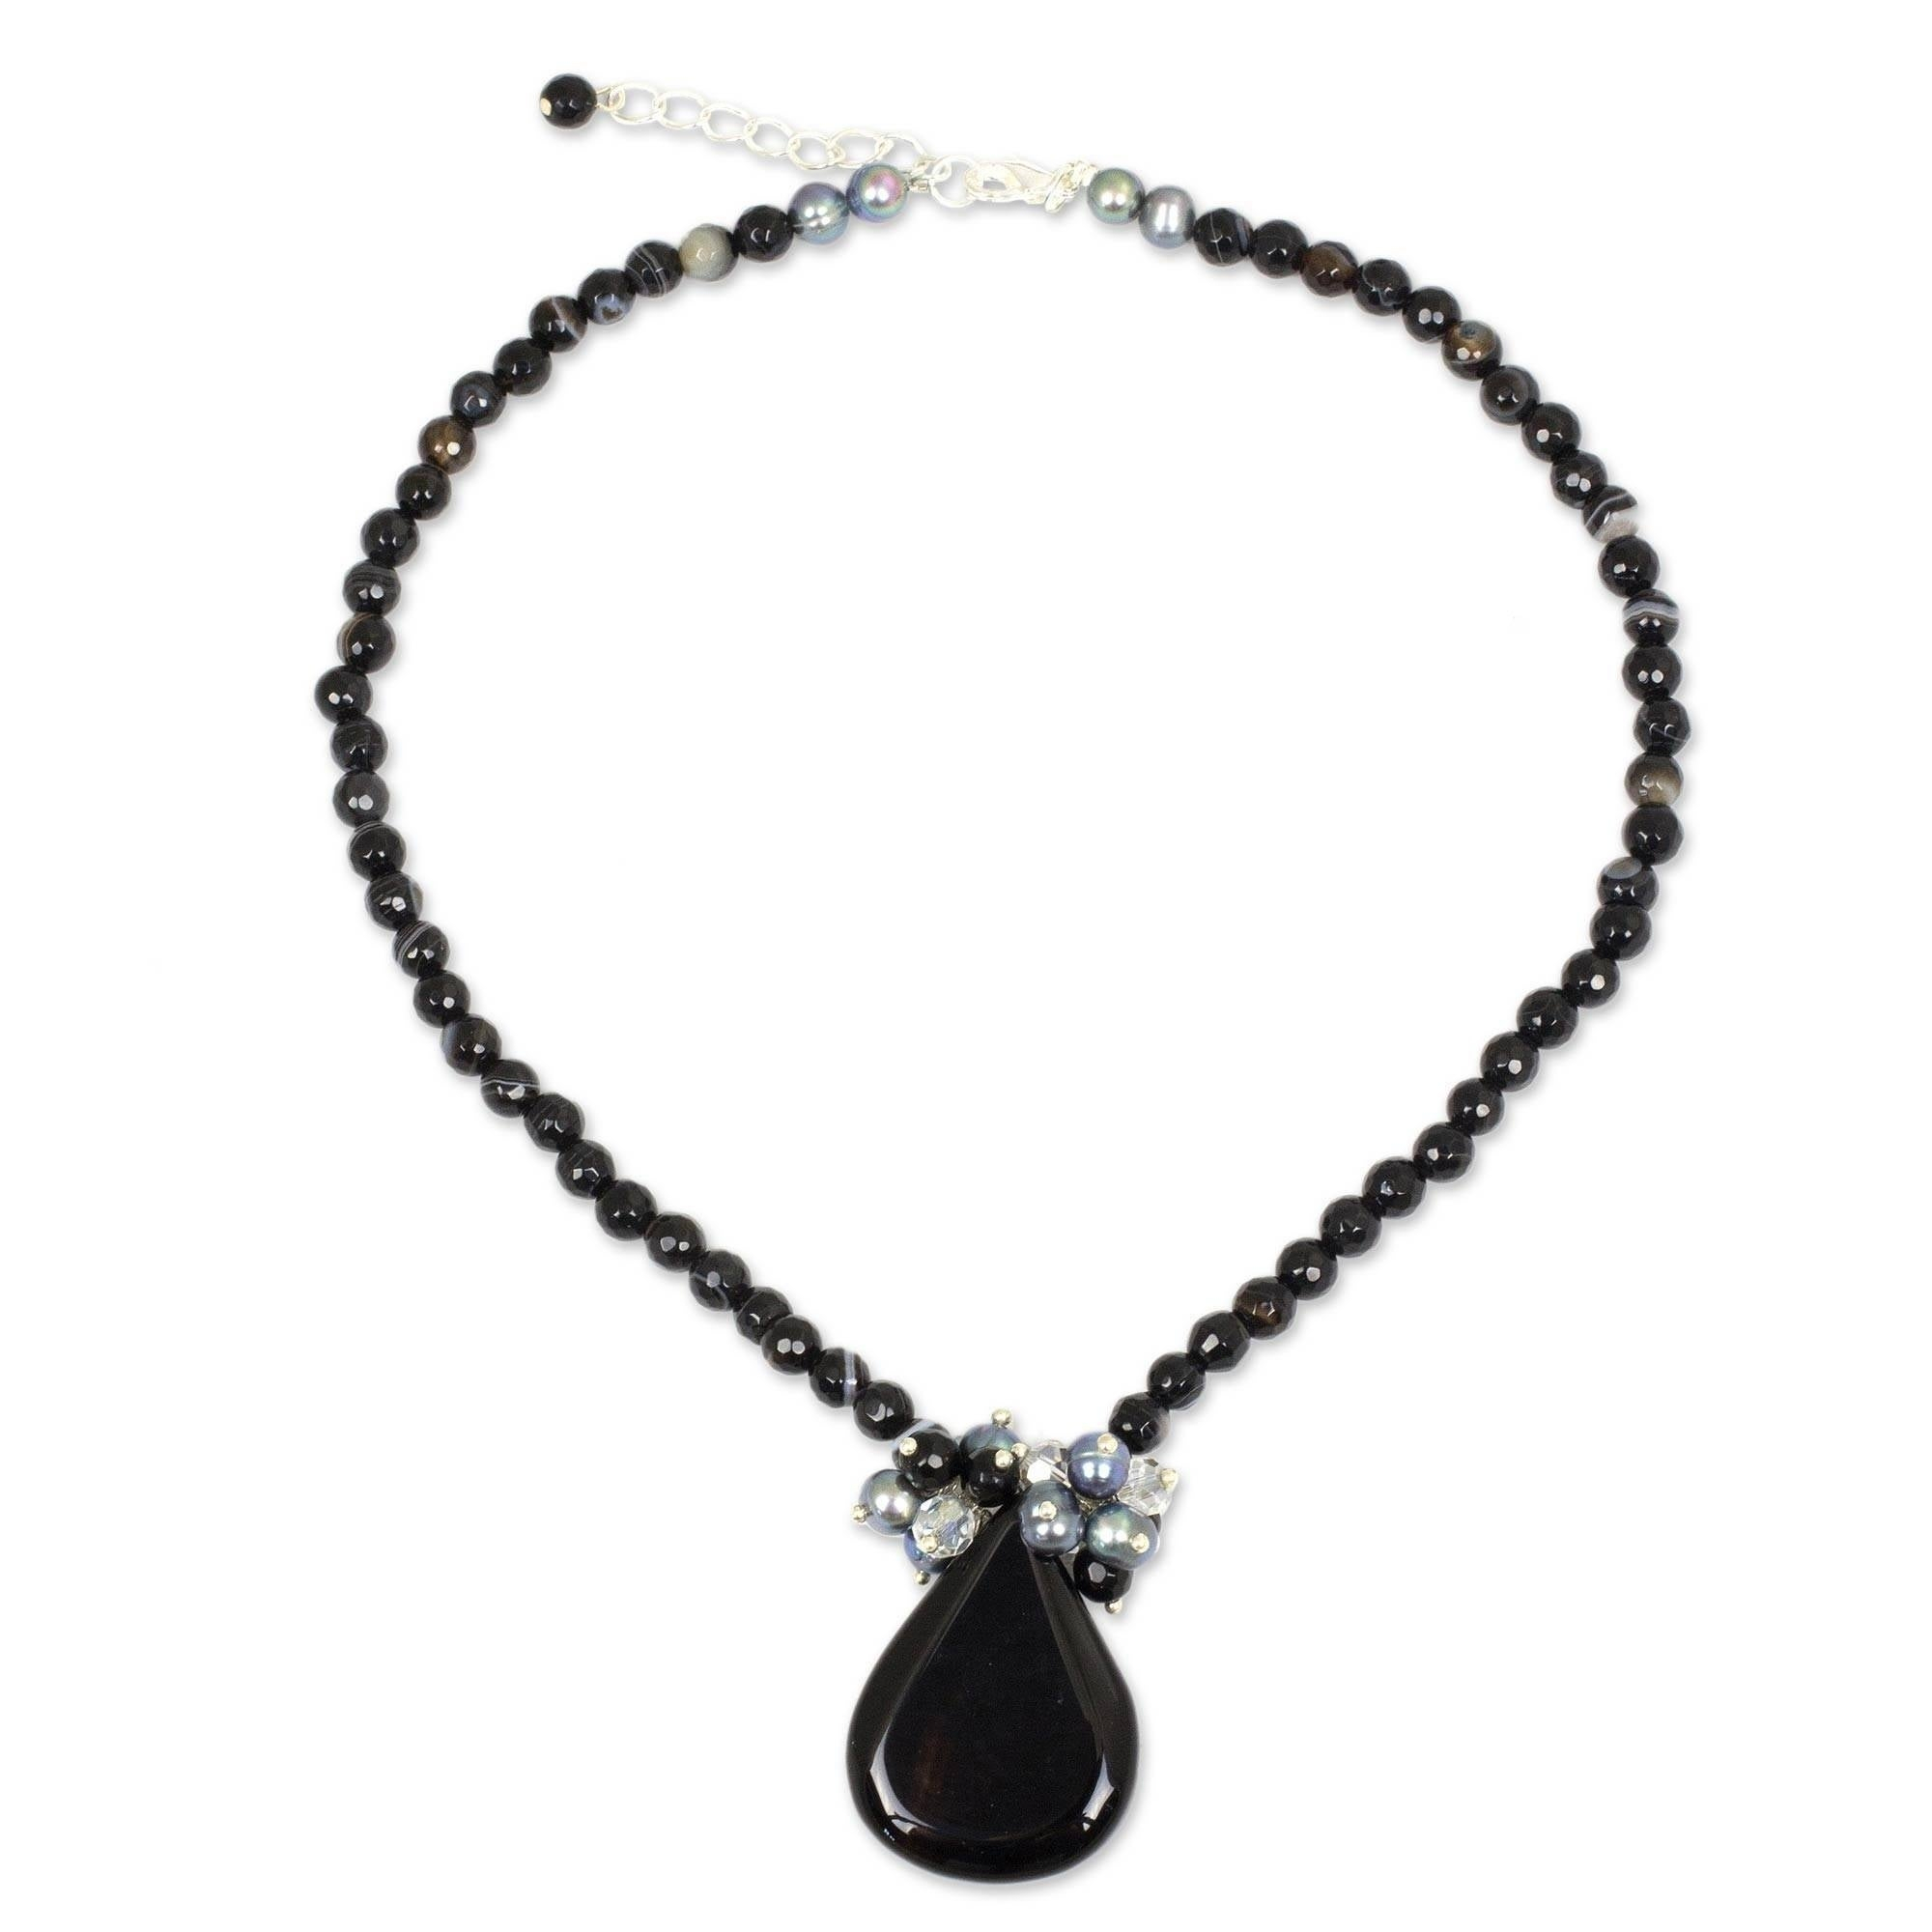 Handmade Freshwater Pearls And Black Onyx Teardrop Falls Beaded Pendant Necklace (thailand) With Regard To Best And Newest Sparkling Teardrop Chandelier Pendant Necklaces (View 3 of 25)